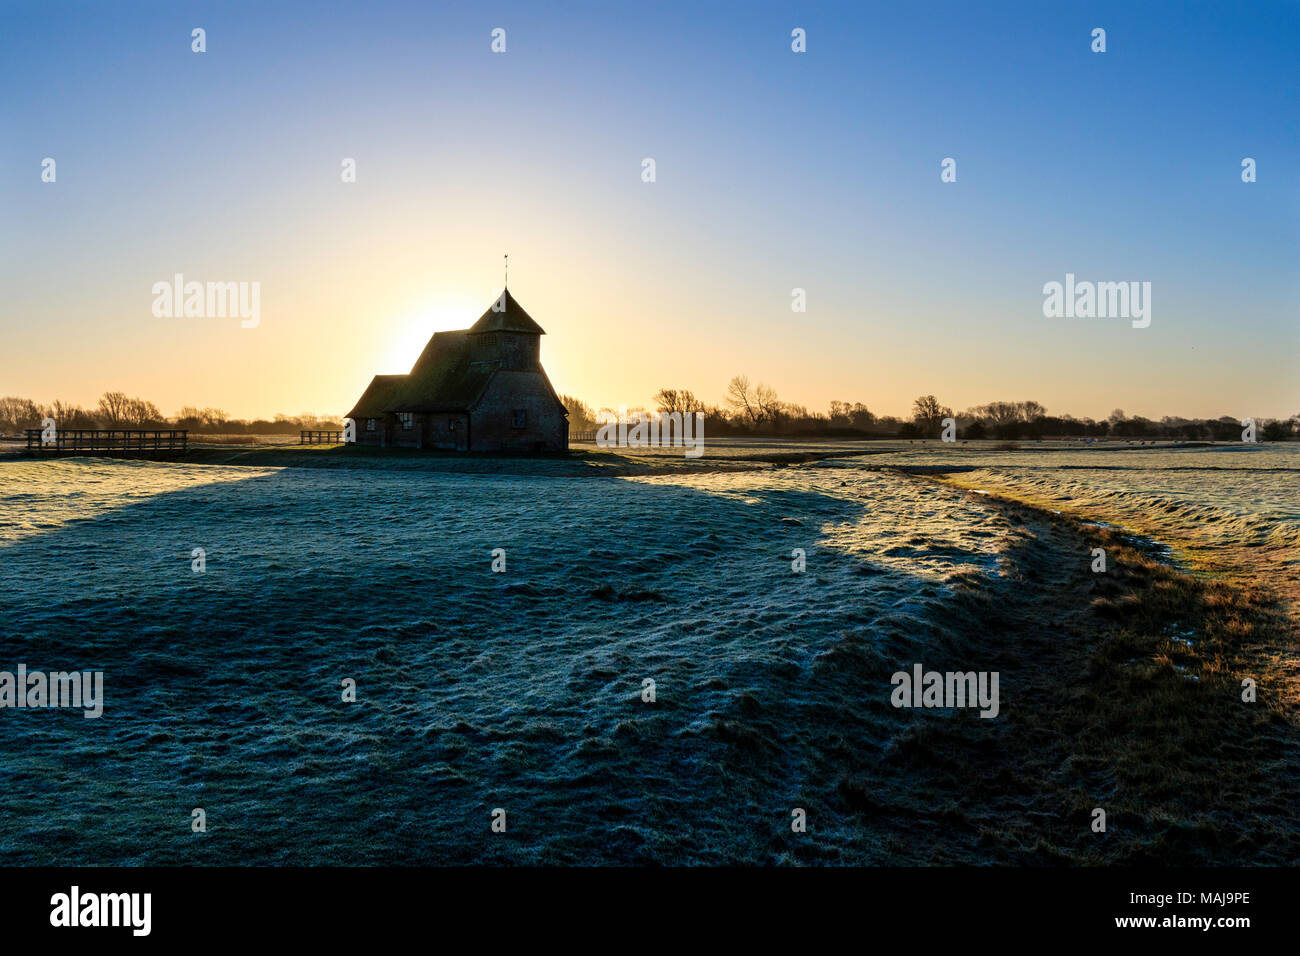 St Thomas a Becket church in the marshes. Sunrise behind the church, frost on the ground, church on horizon. Romney marsh, UK - Stock Image